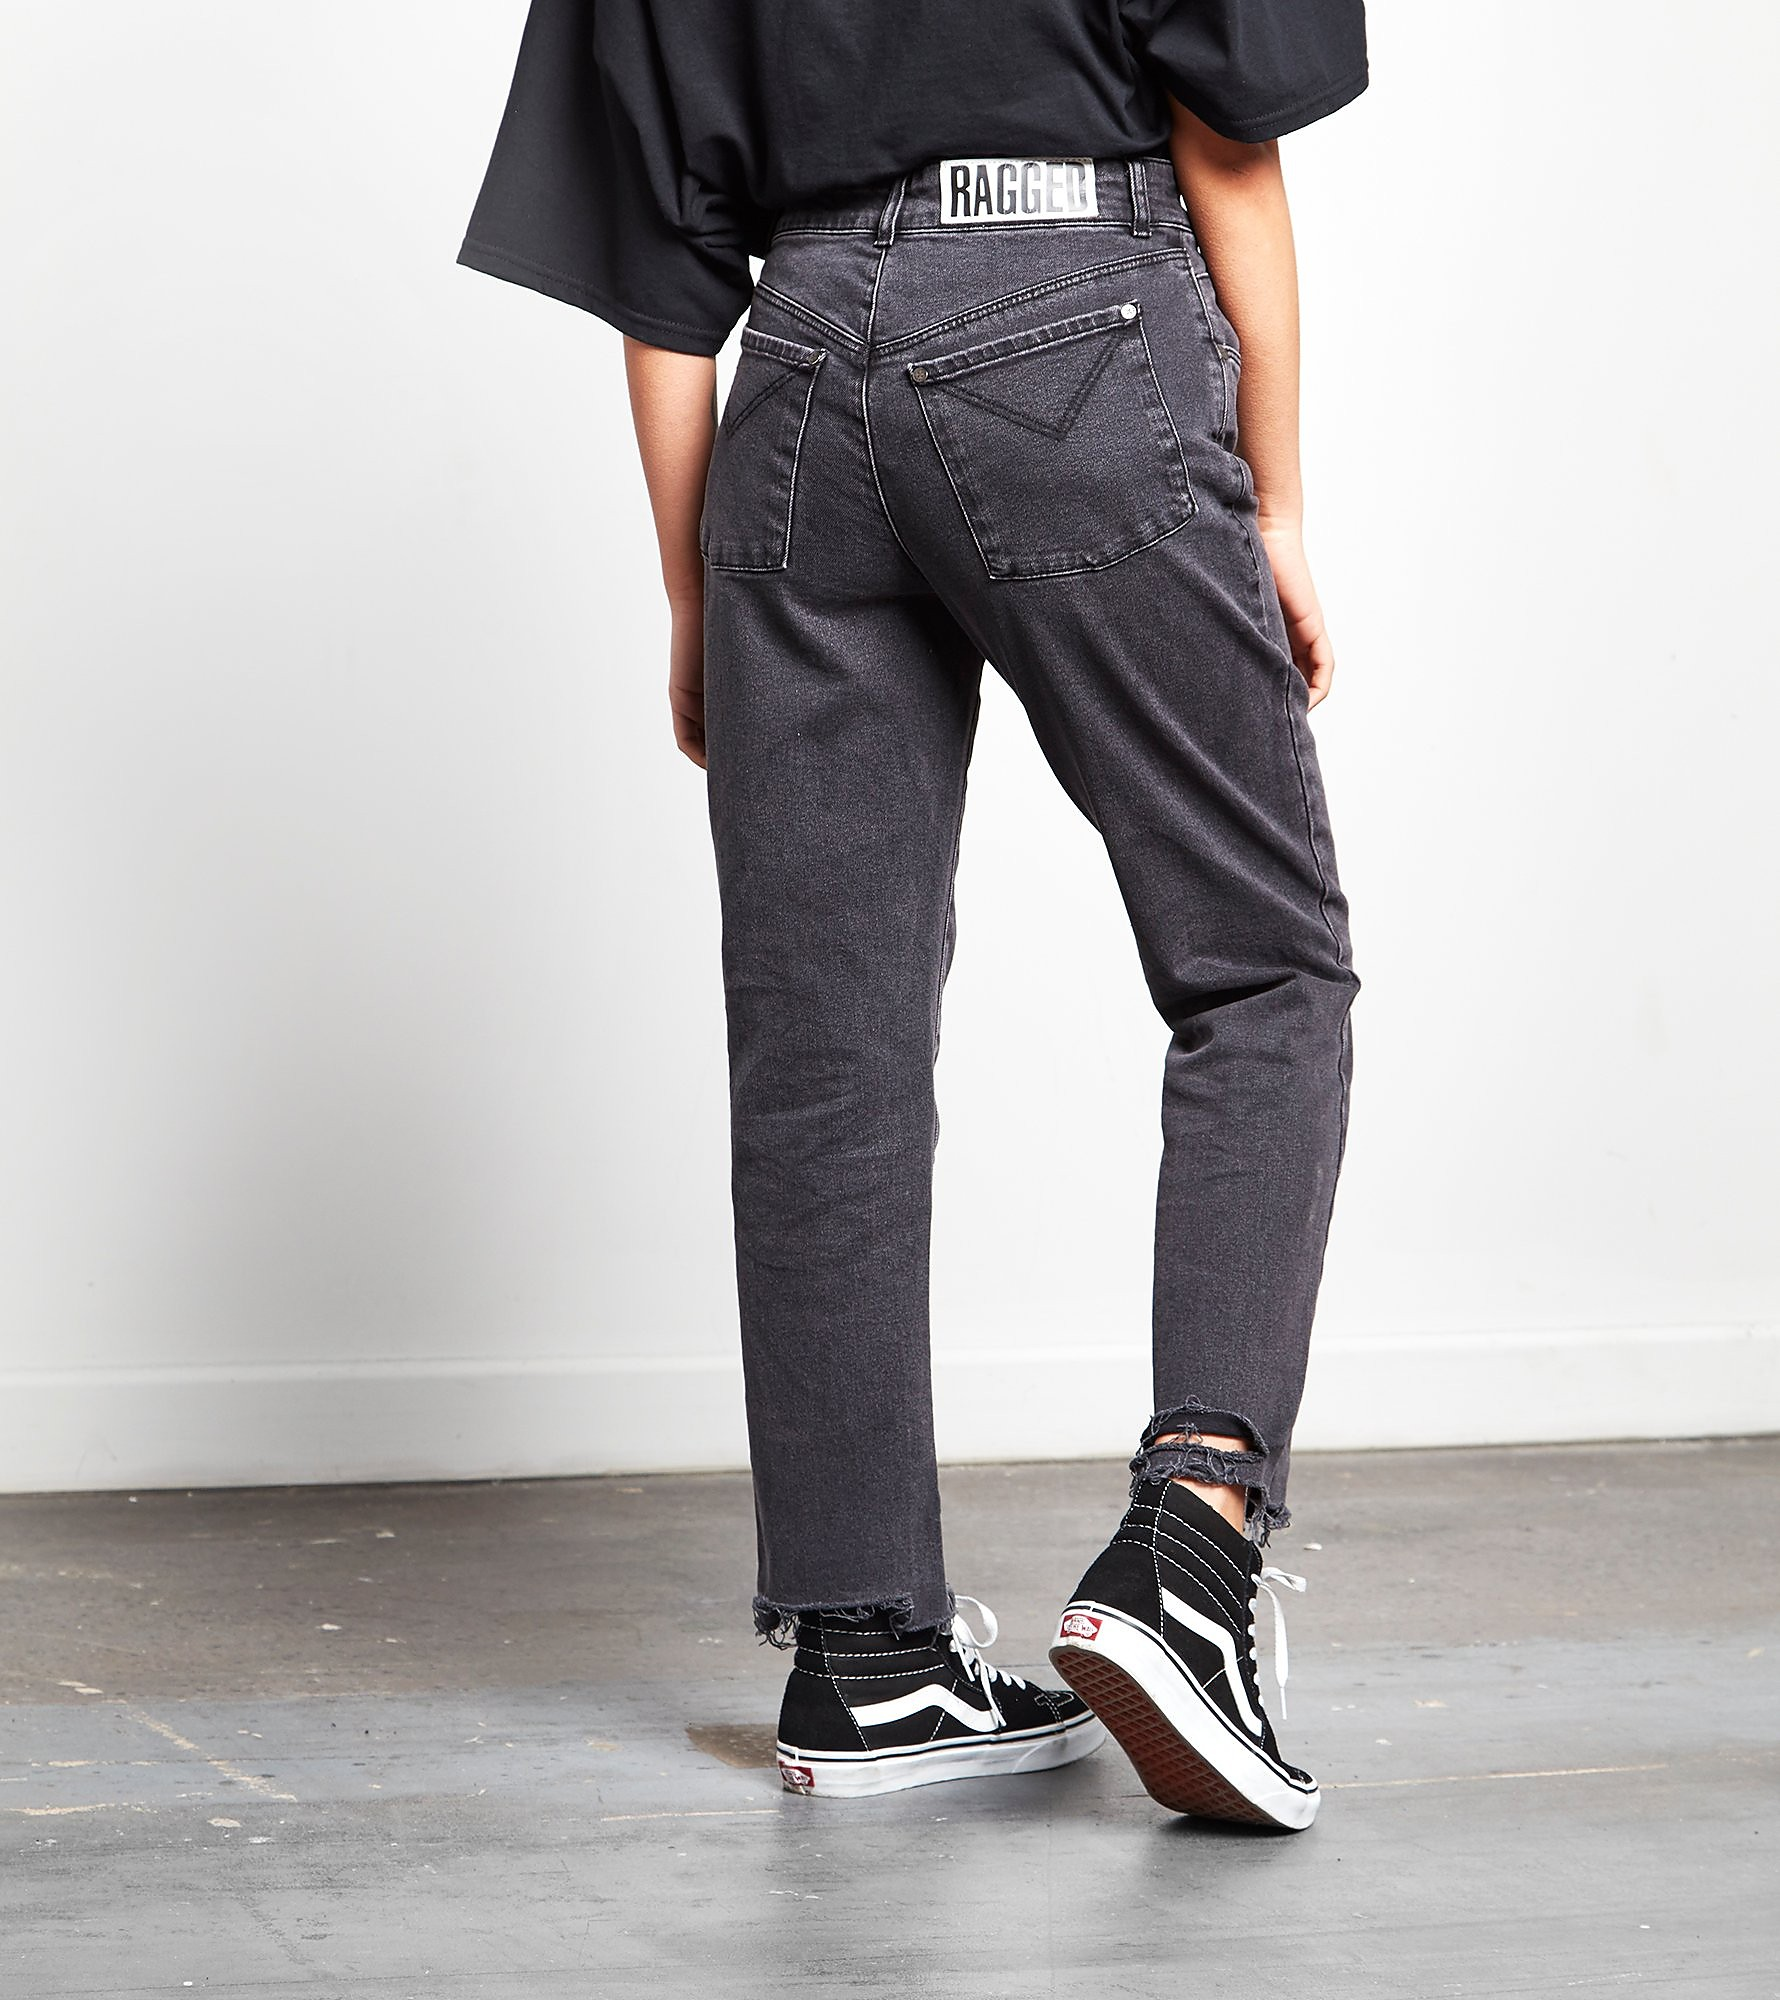 Ragged Priest Graze 'Mom' Ankle Jeans